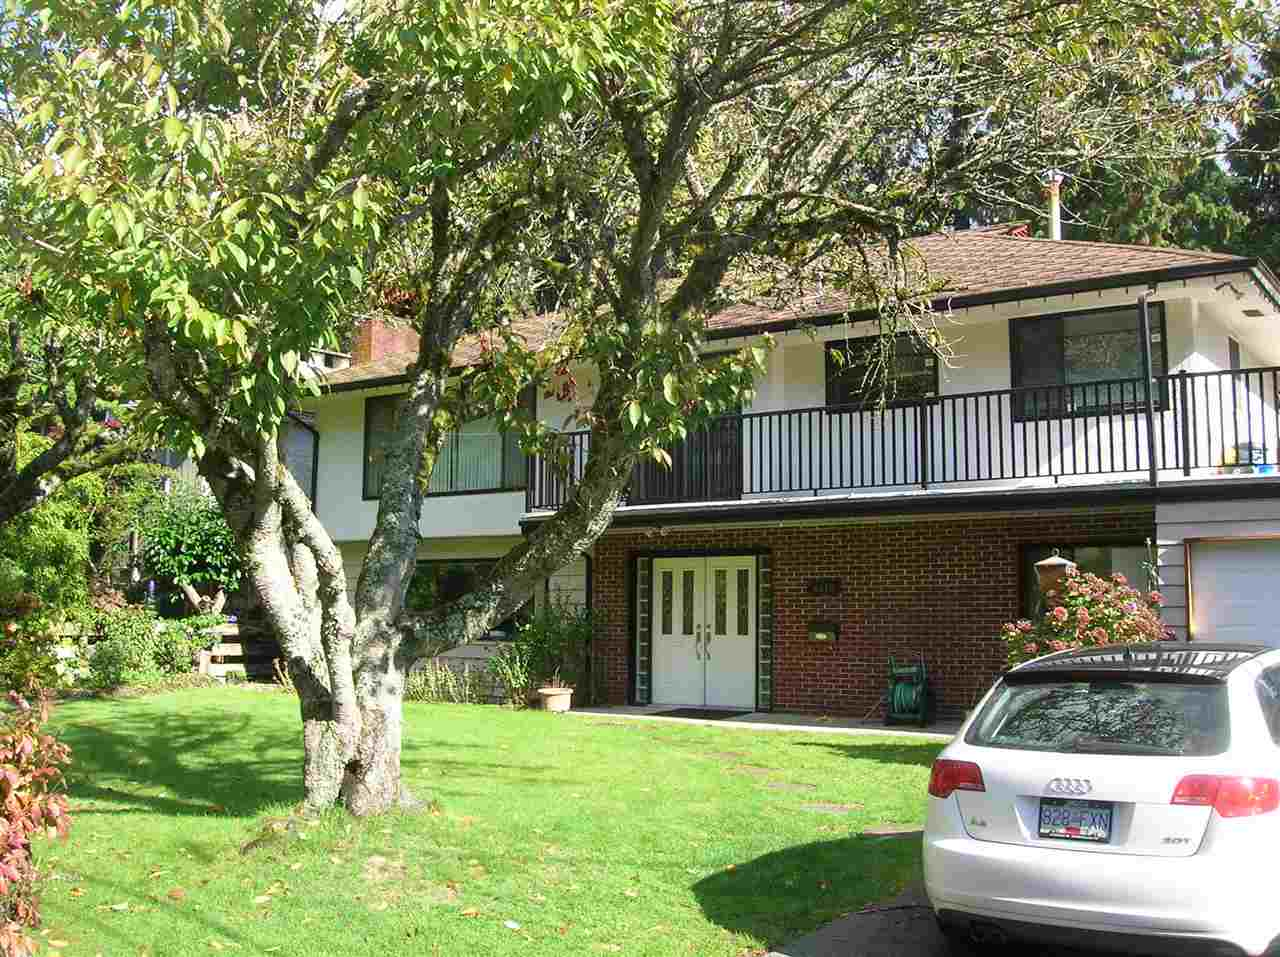 Main Photo: 4476 PRIMROSE Lane in NORTH VANC: Canyon Heights NV House for sale (North Vancouver)  : MLS® # R2008536